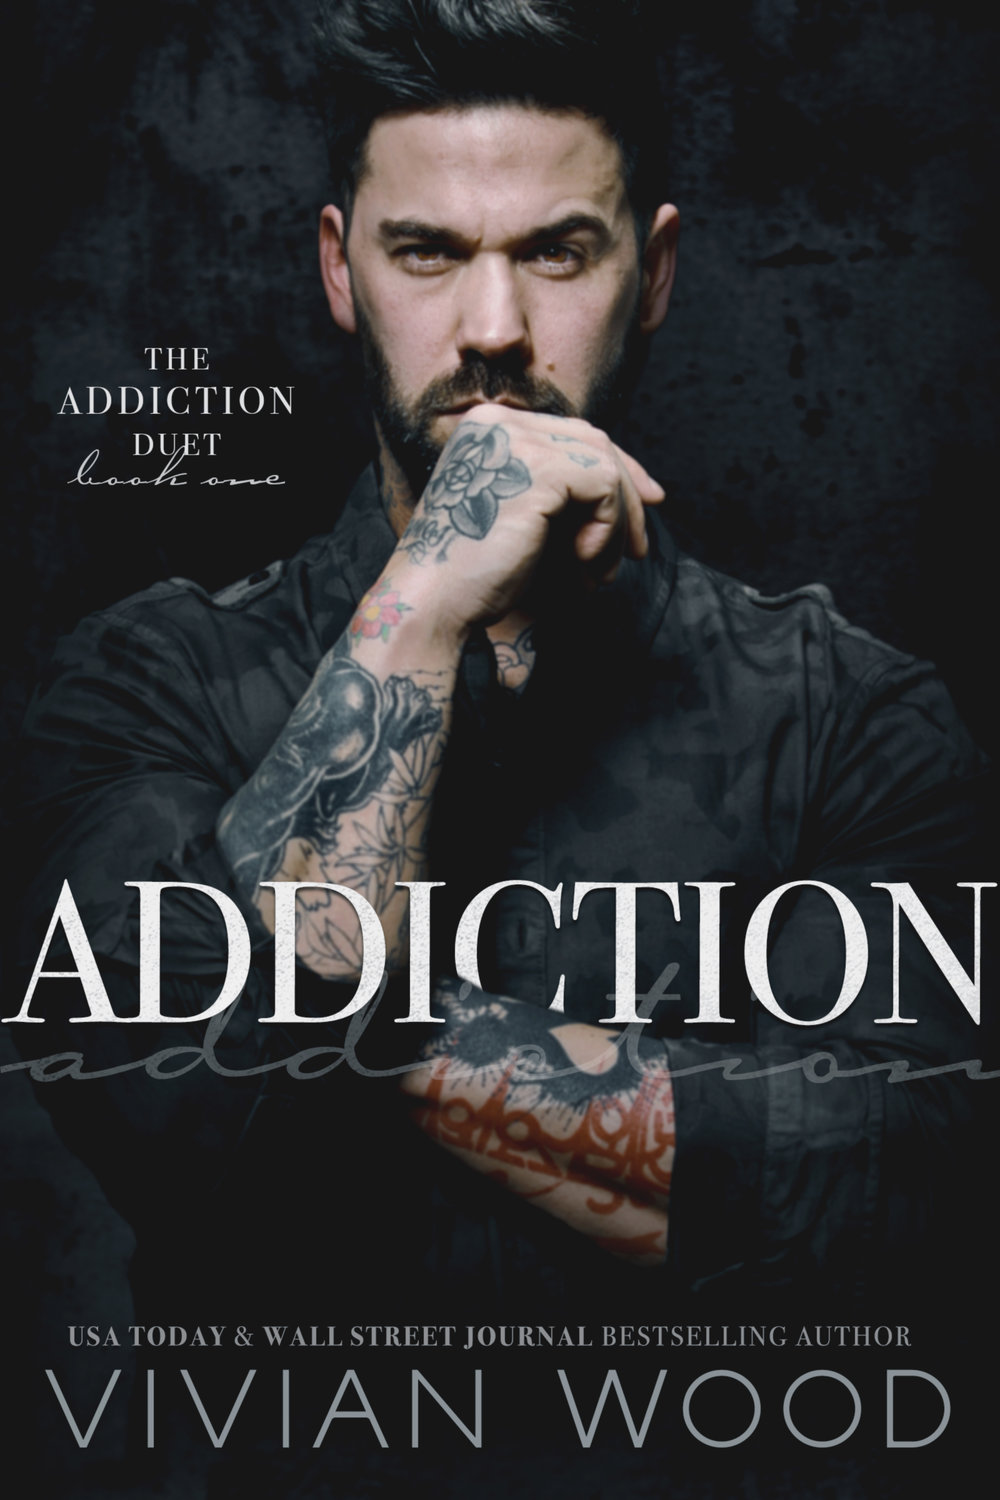 Addiction - Cover model Jonny James